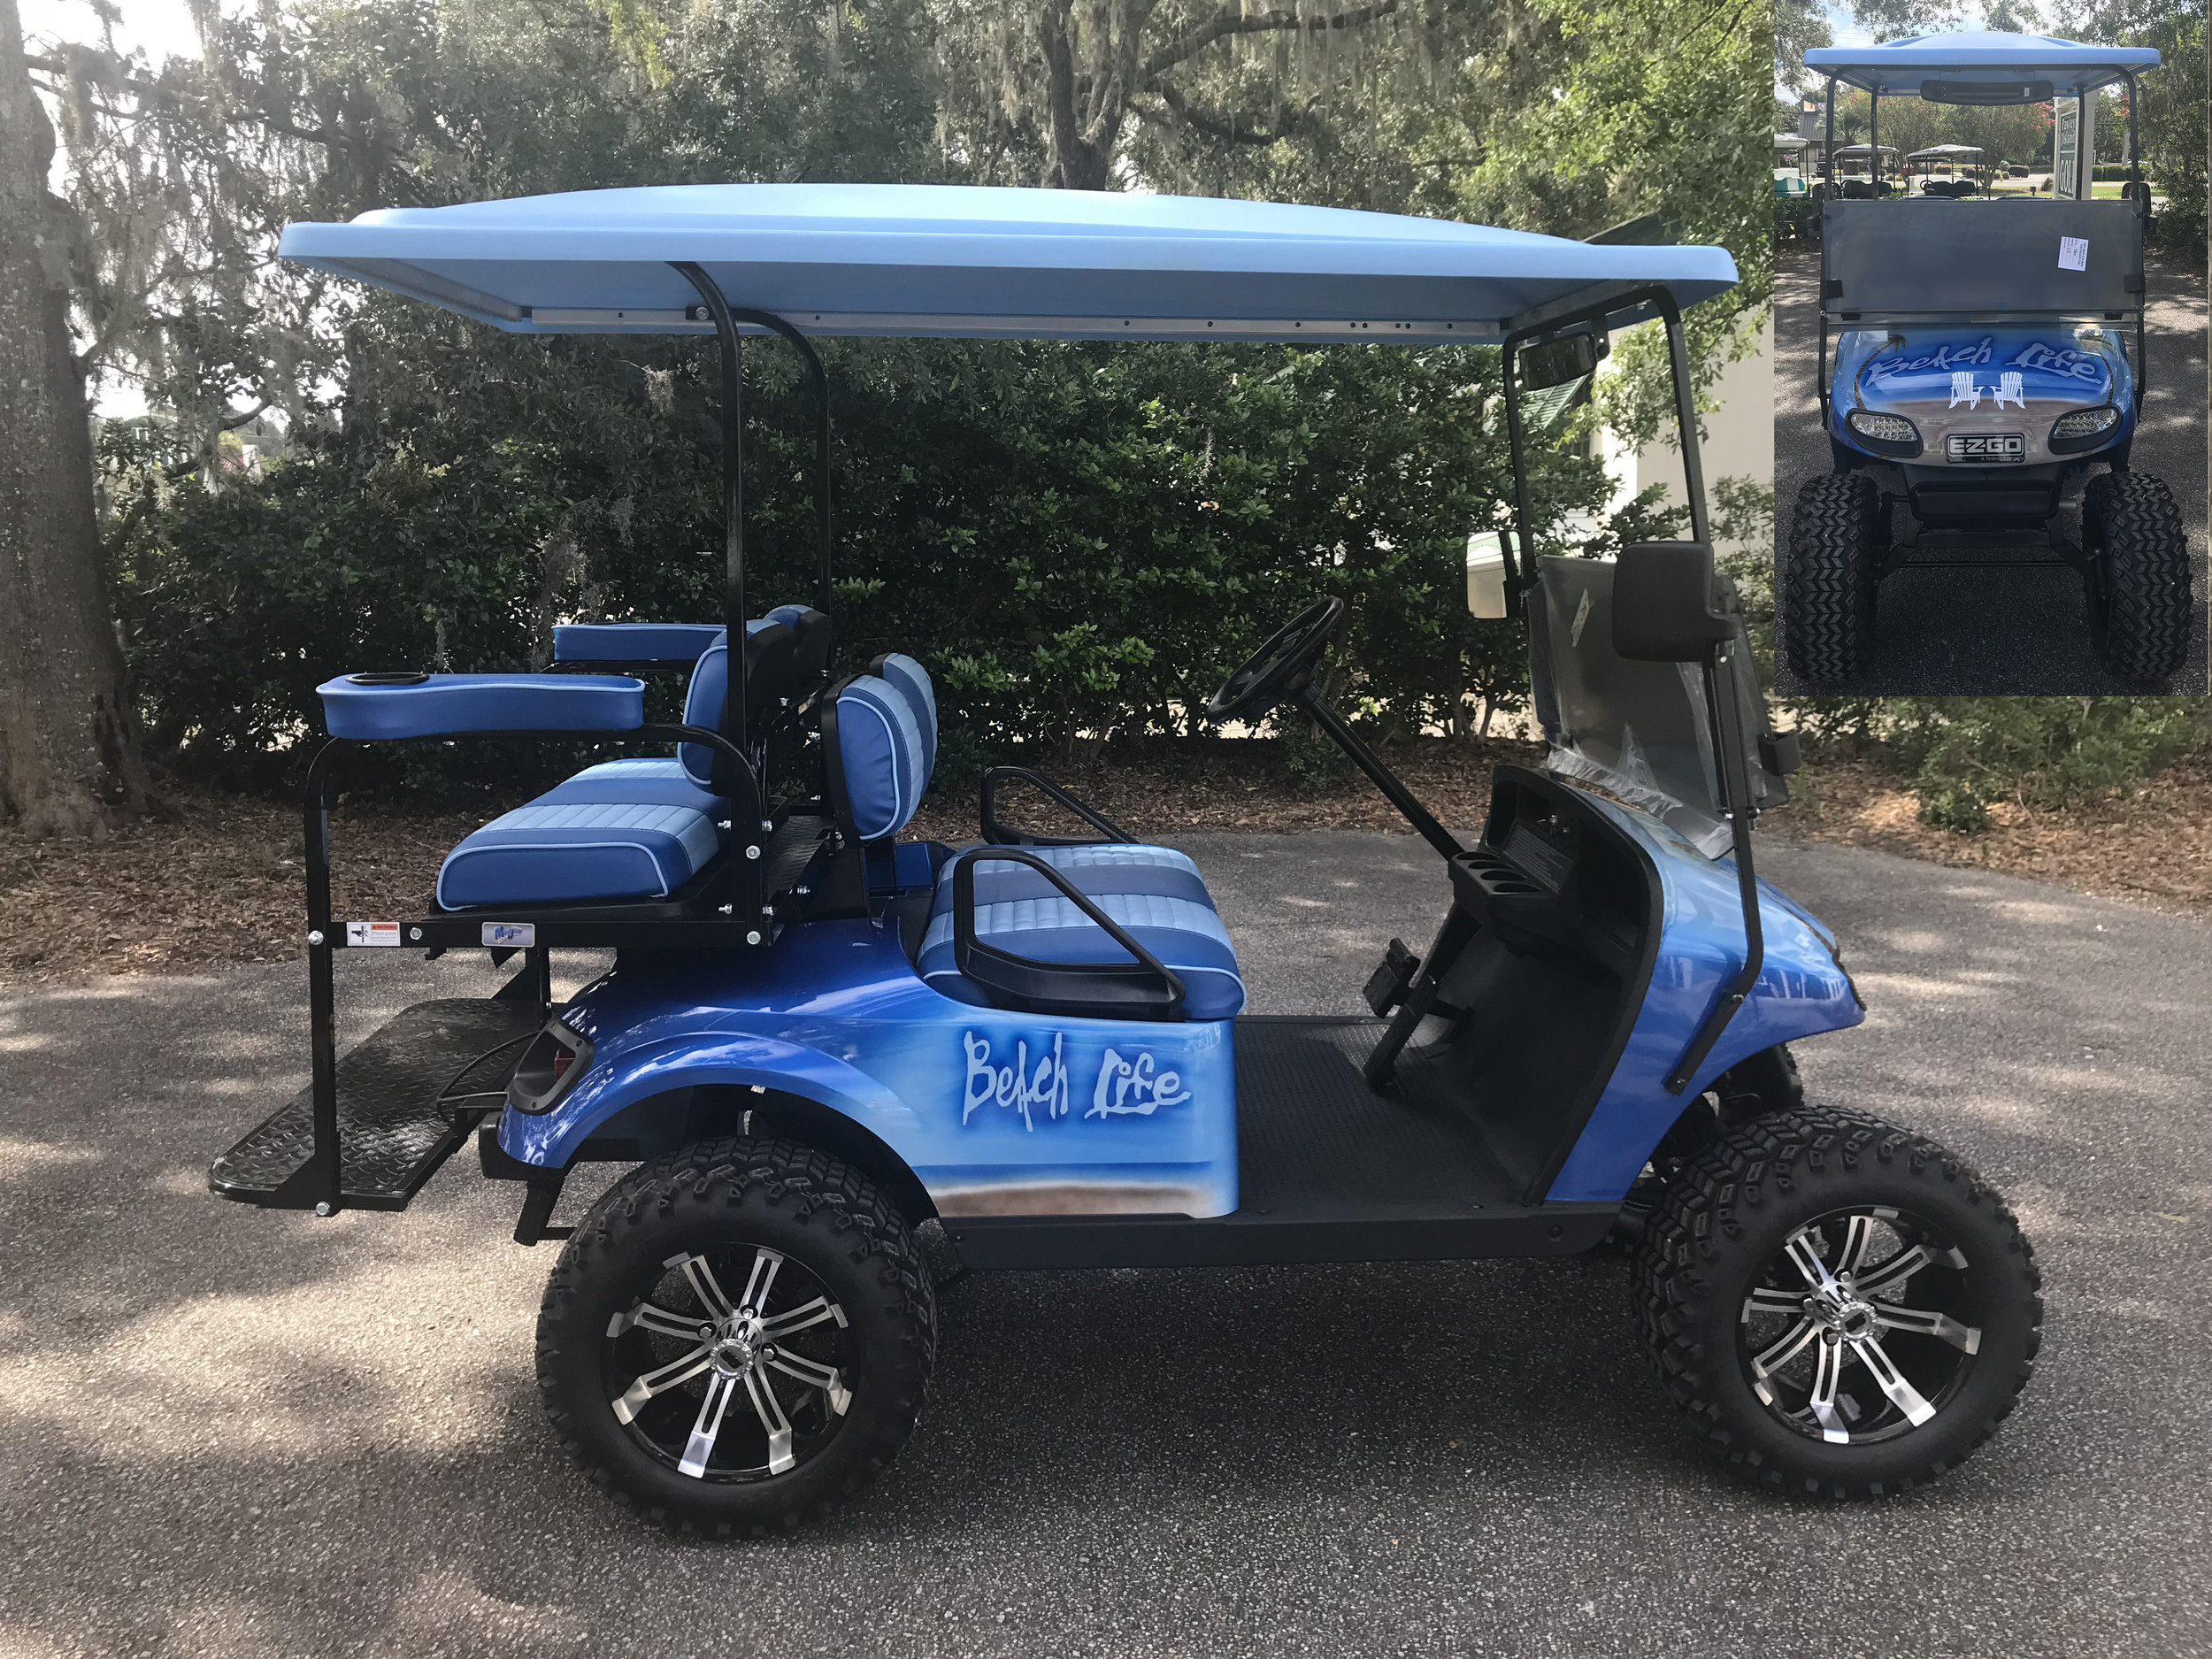 Beach Life EZGO Lifted Cart  Viper blue/light blue seats, light blue extended top, new 2018 (6-8vt) batteries, high speed code, LED lights, Backlash (23x10x14) tires, flip windshield, mirror and side mirrors, rear cup holders, and state of charge meter